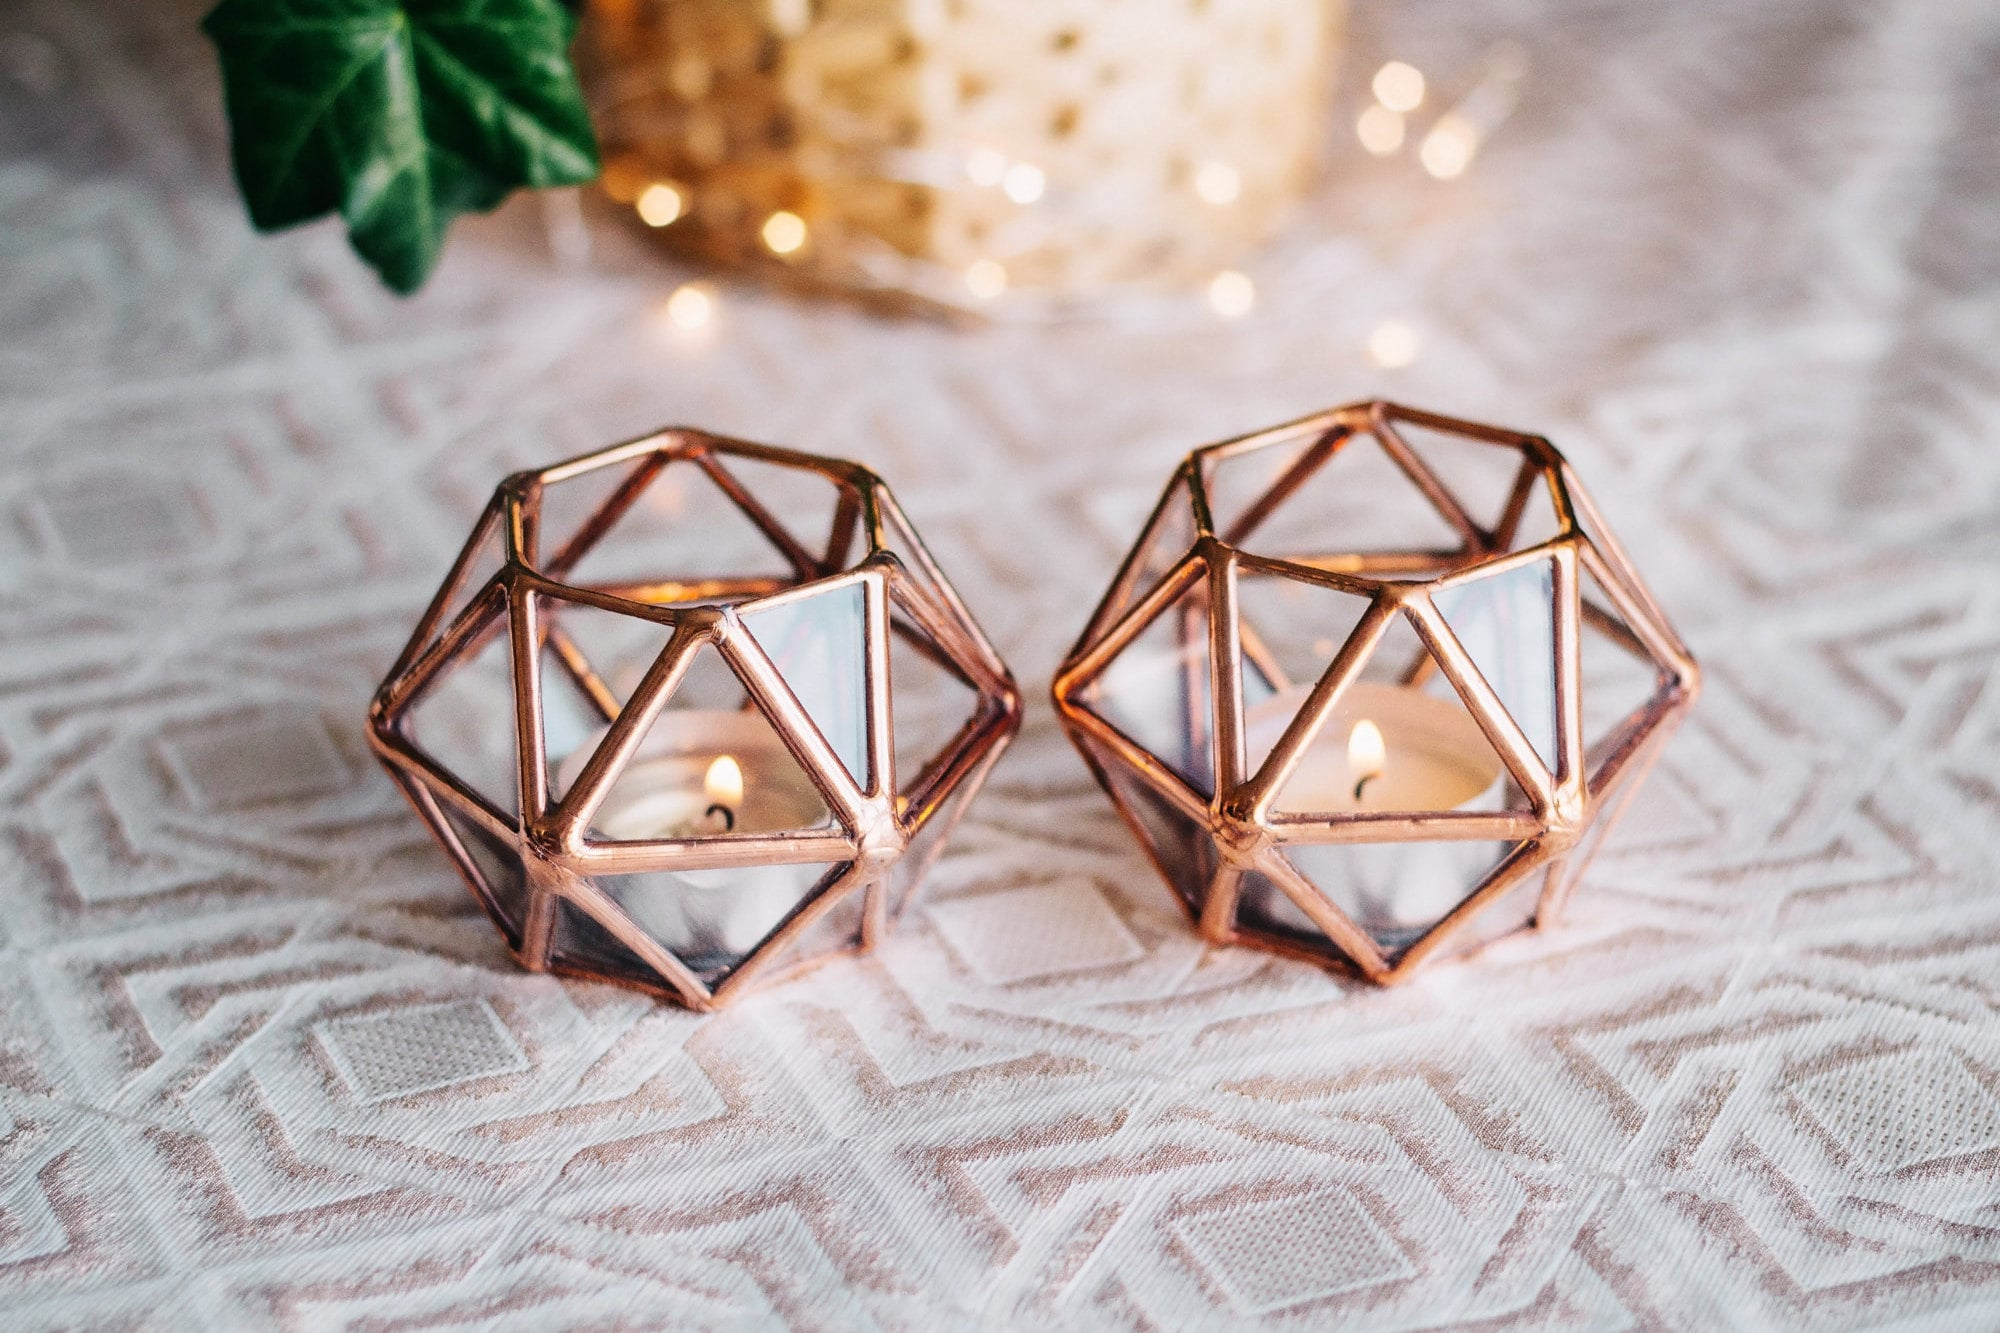 Geometric Glass Tealight Candle Holder | Set Of 2 Copper Wedding Decor Thanksgiving & Christmas Table